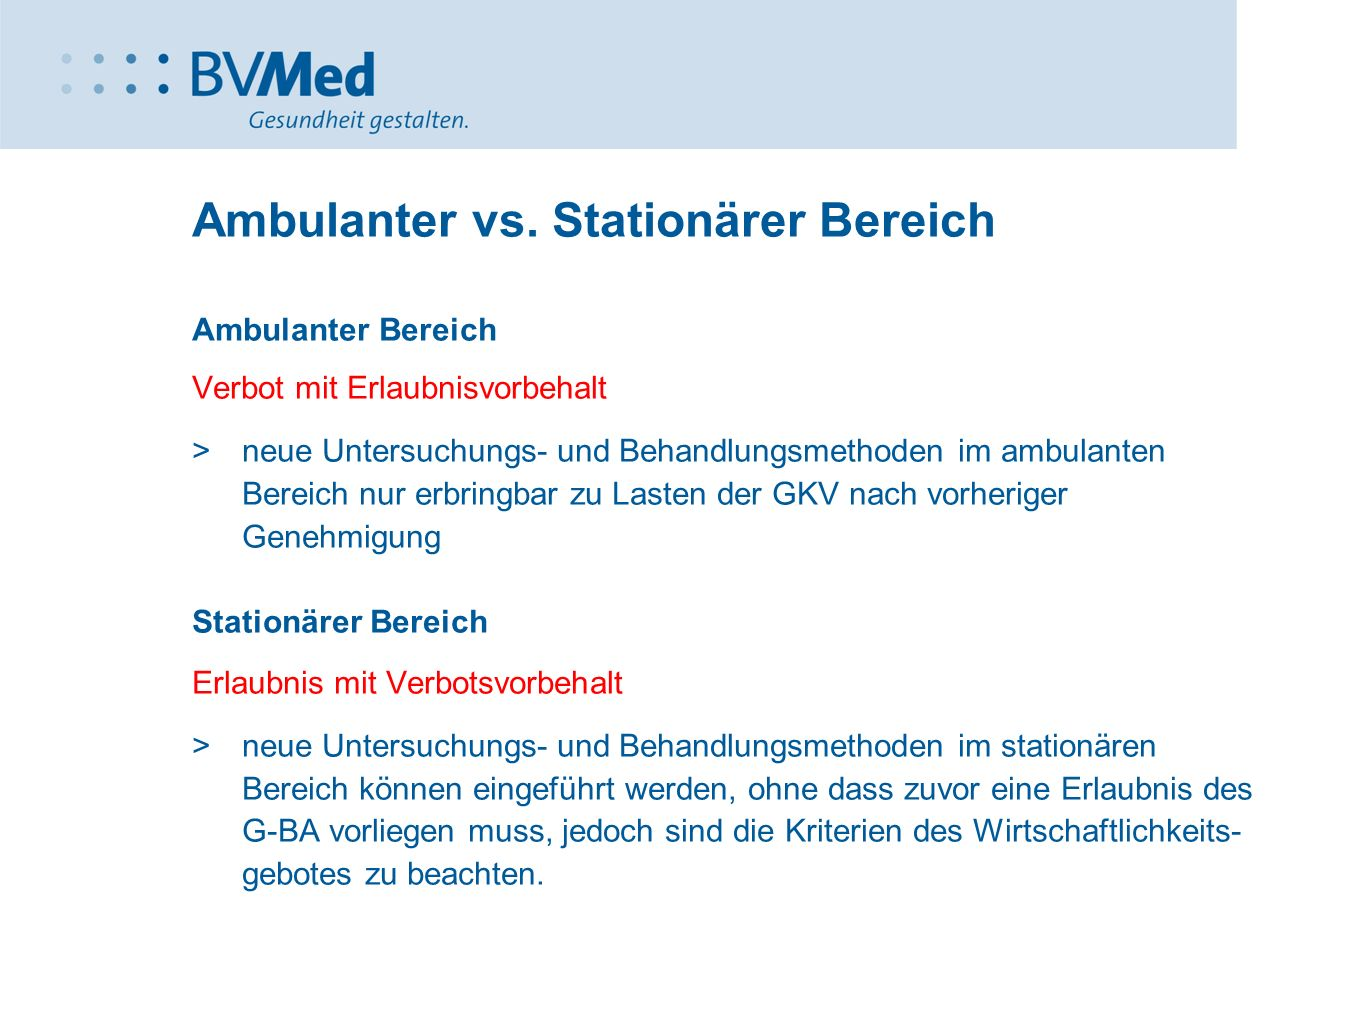 Ambulanter vs. Stationärer Bereich